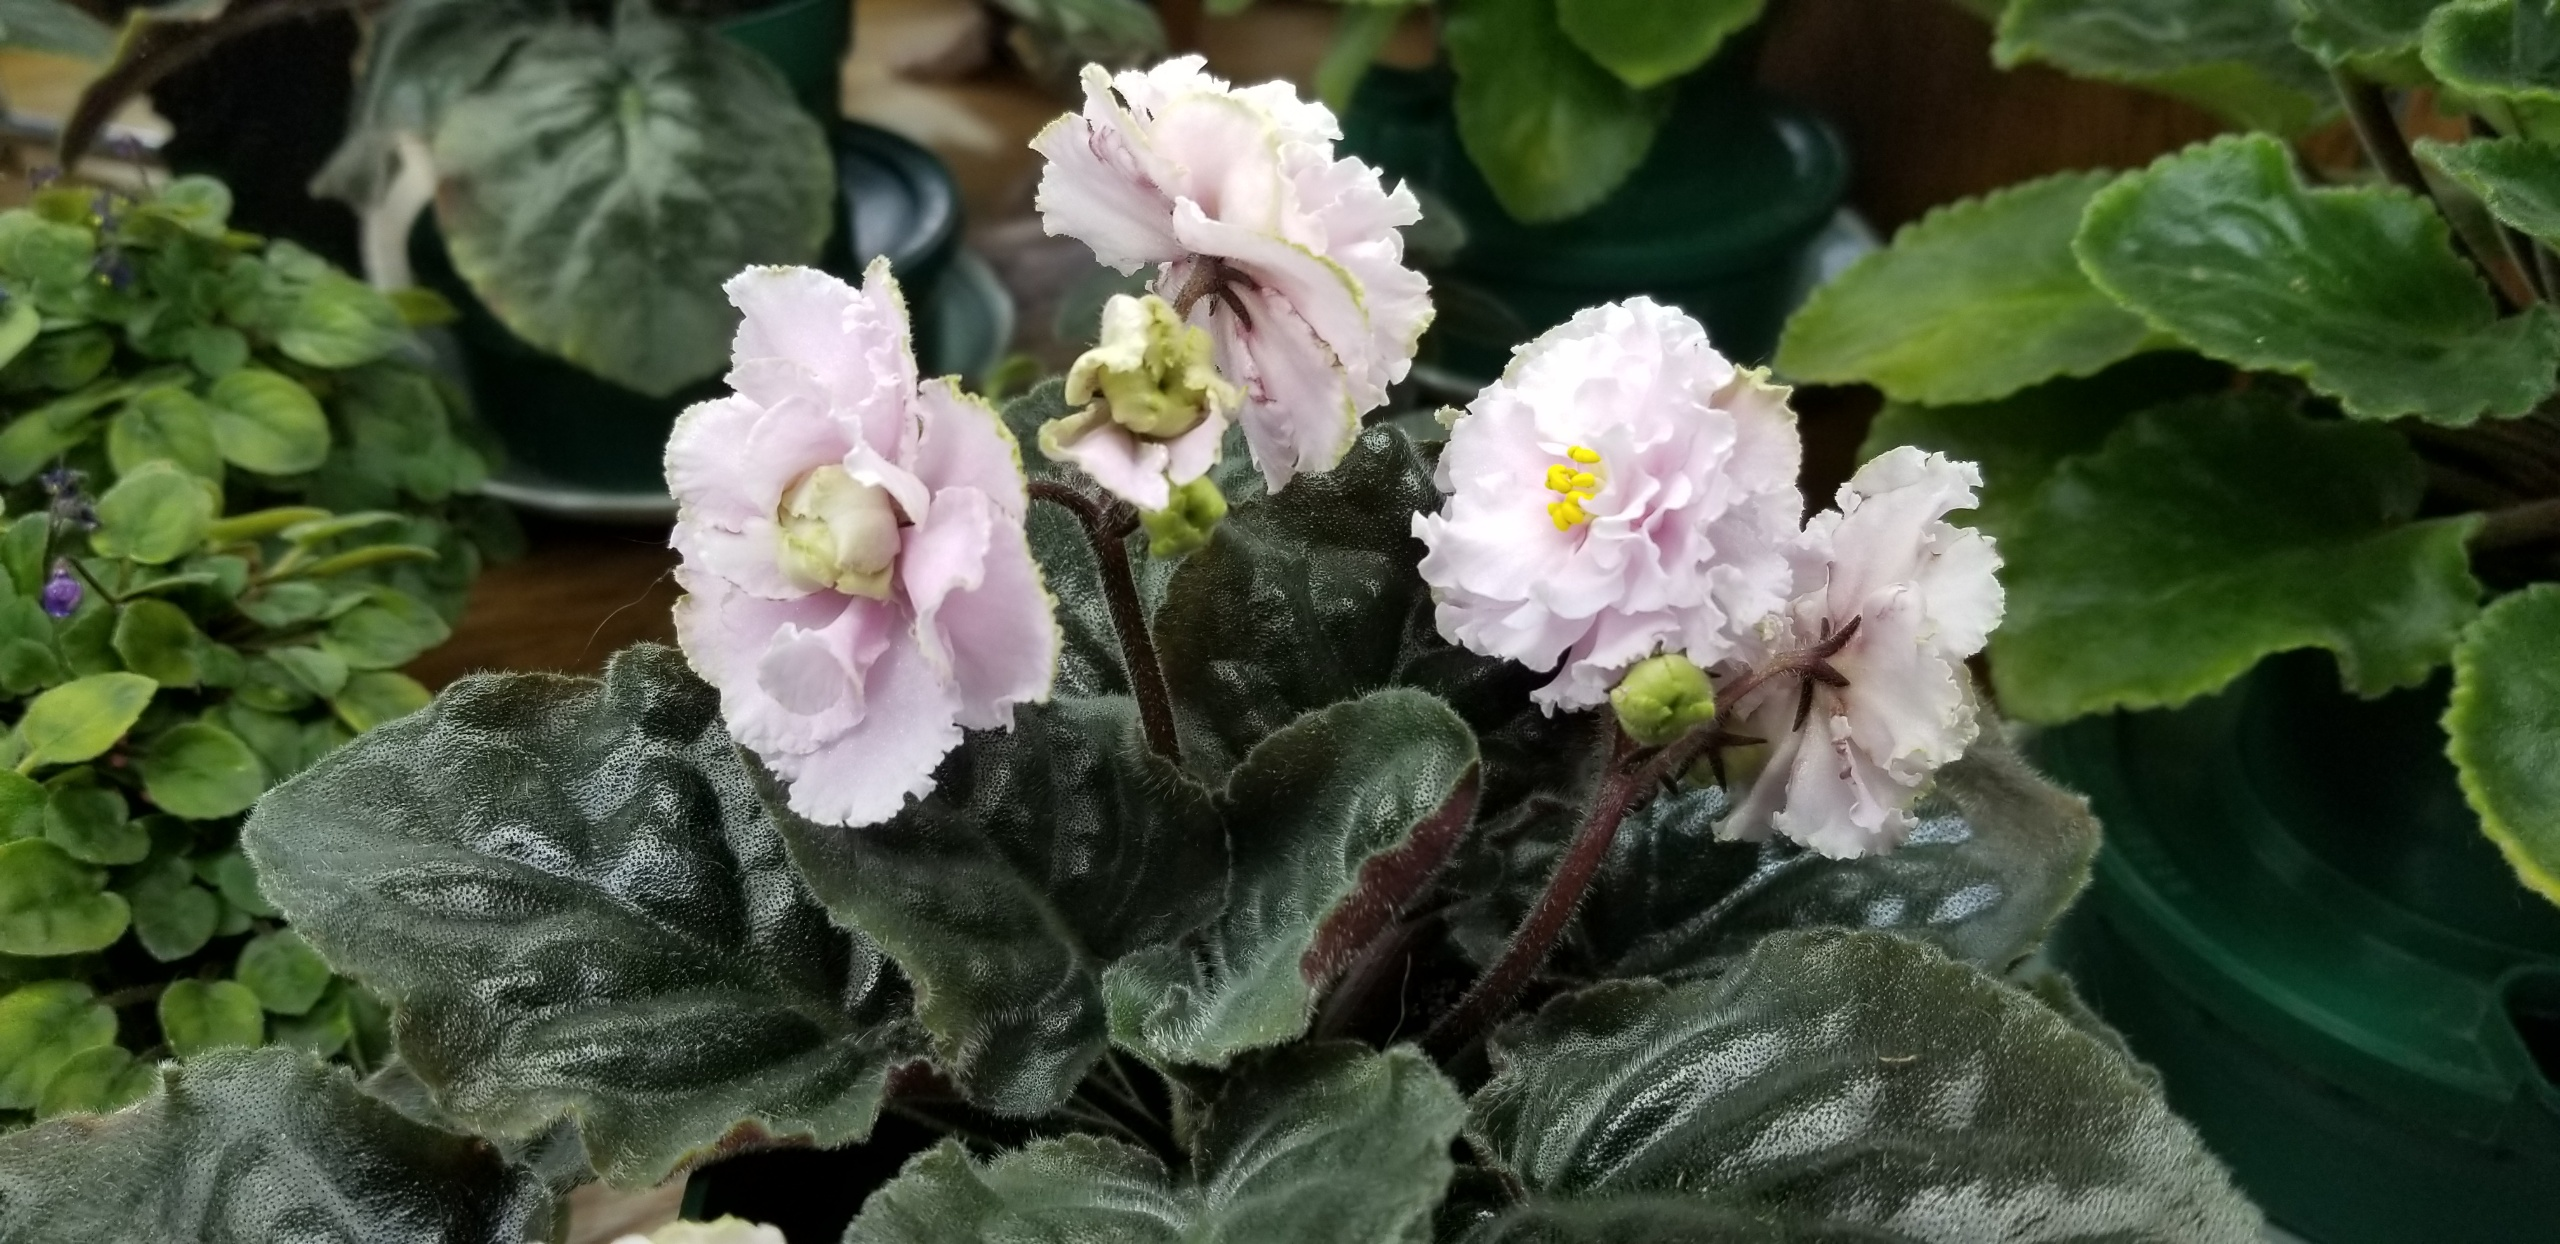 """White to pale pink 2.25"""" blooms semidouble large wavy star ruffled.                                                                                                          Size/growth habit:  Medium green pointed quilted ovate foliage"""